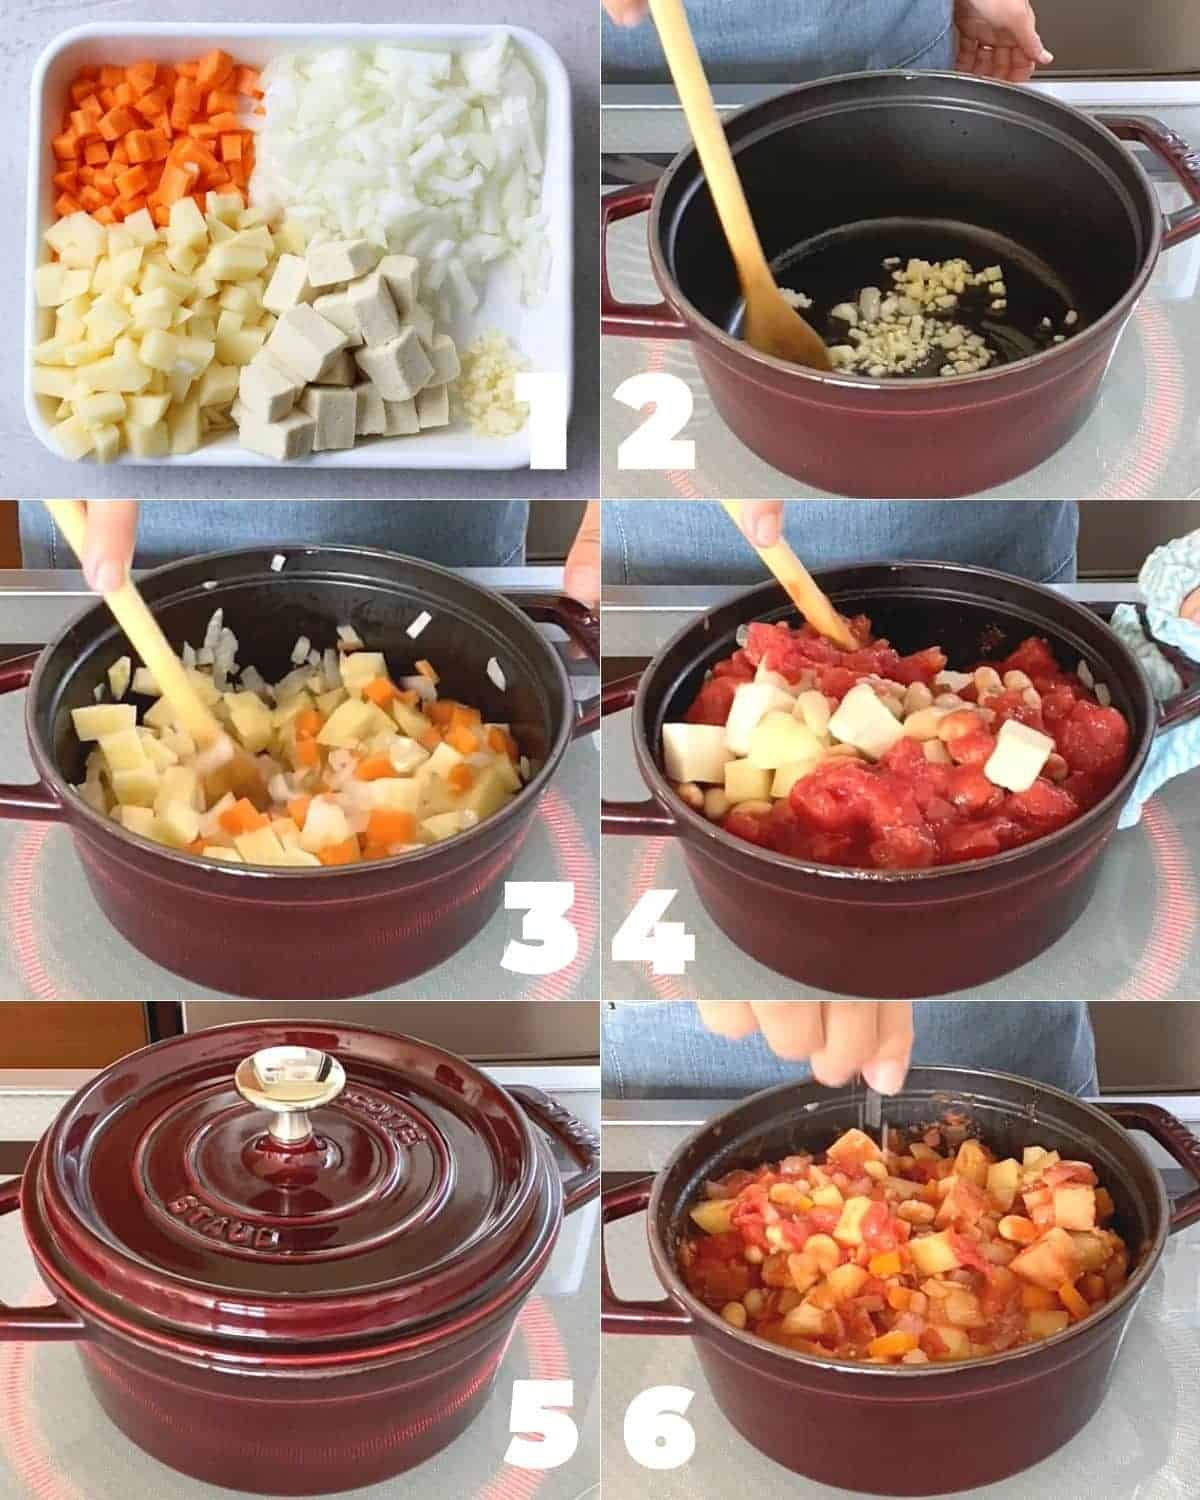 How to cook Simmered soybeans and koyadofu in tomato sauce